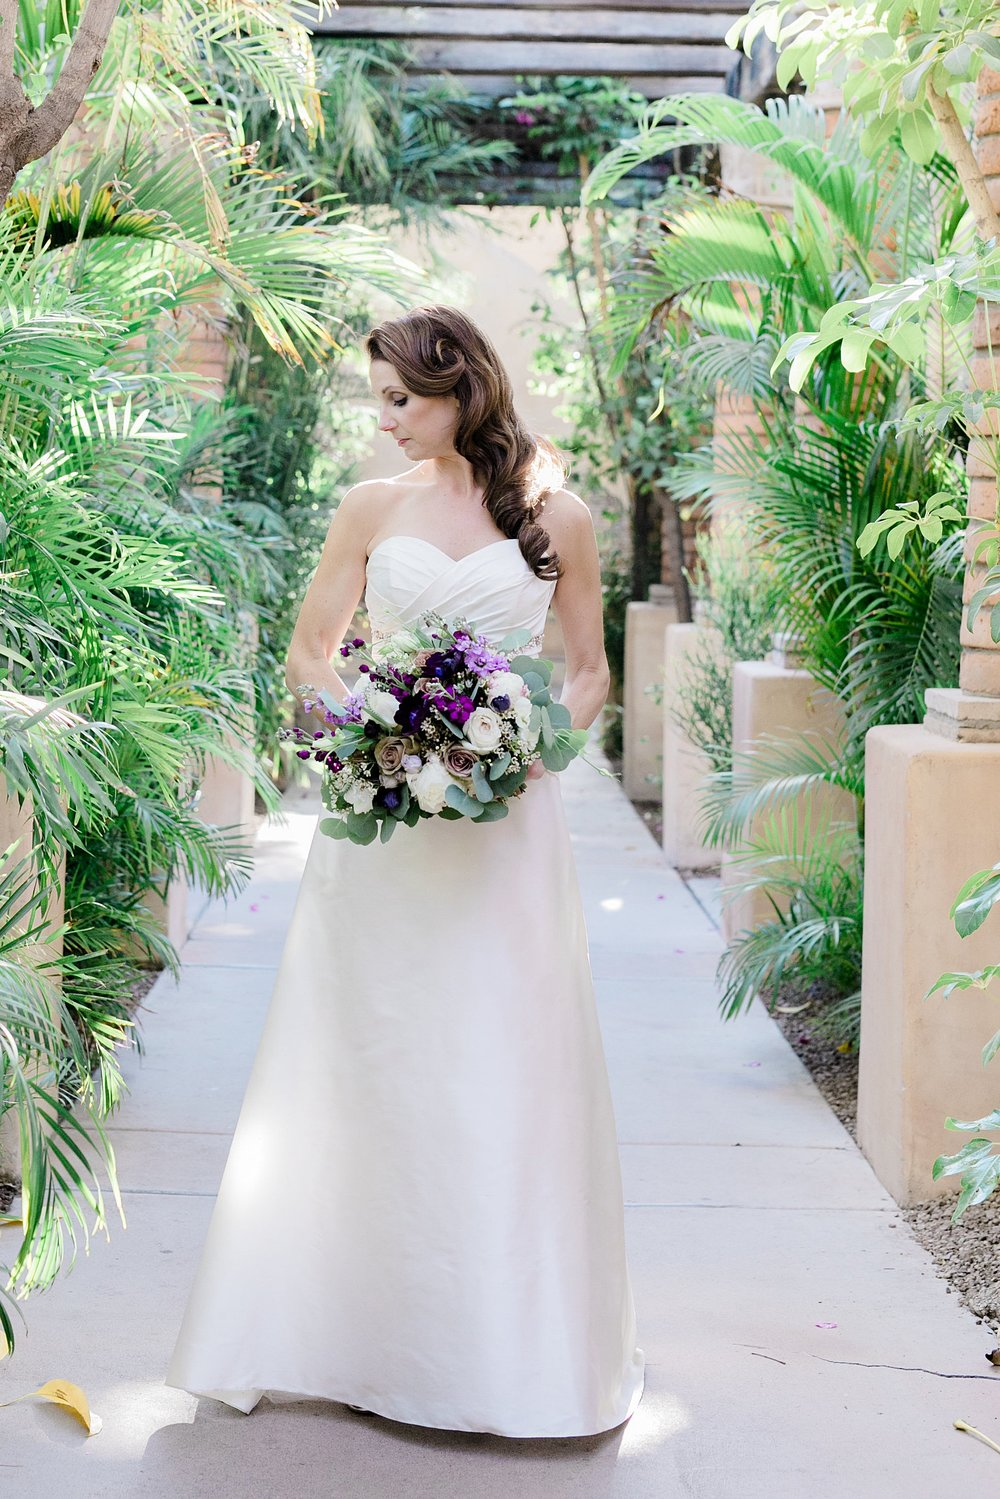 Meghan and Warren Wedding Royal Palms-FIRST LOOK AND BRIDALS-0052.jpg